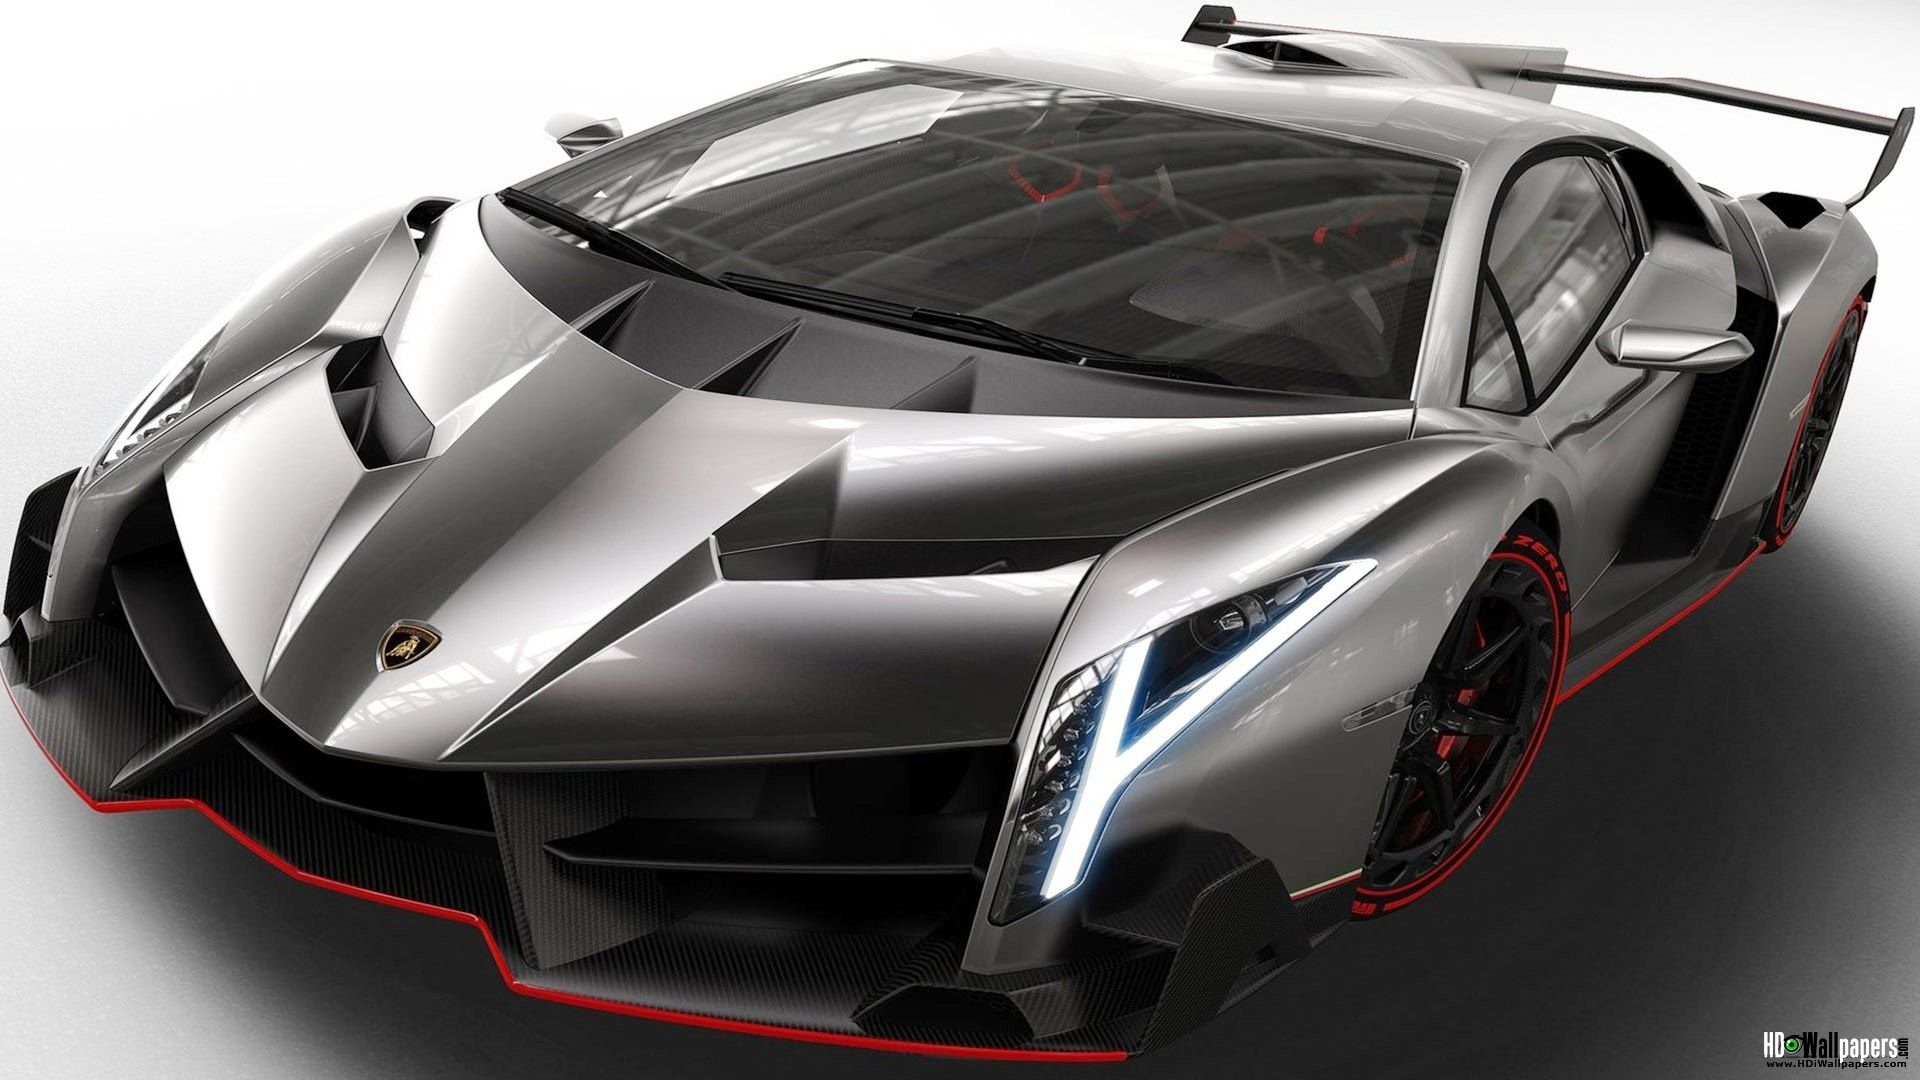 Fastest Car In The World 2015 >> Fastest Cars In The World Top 10 List 2014 2015 While Most Of Us